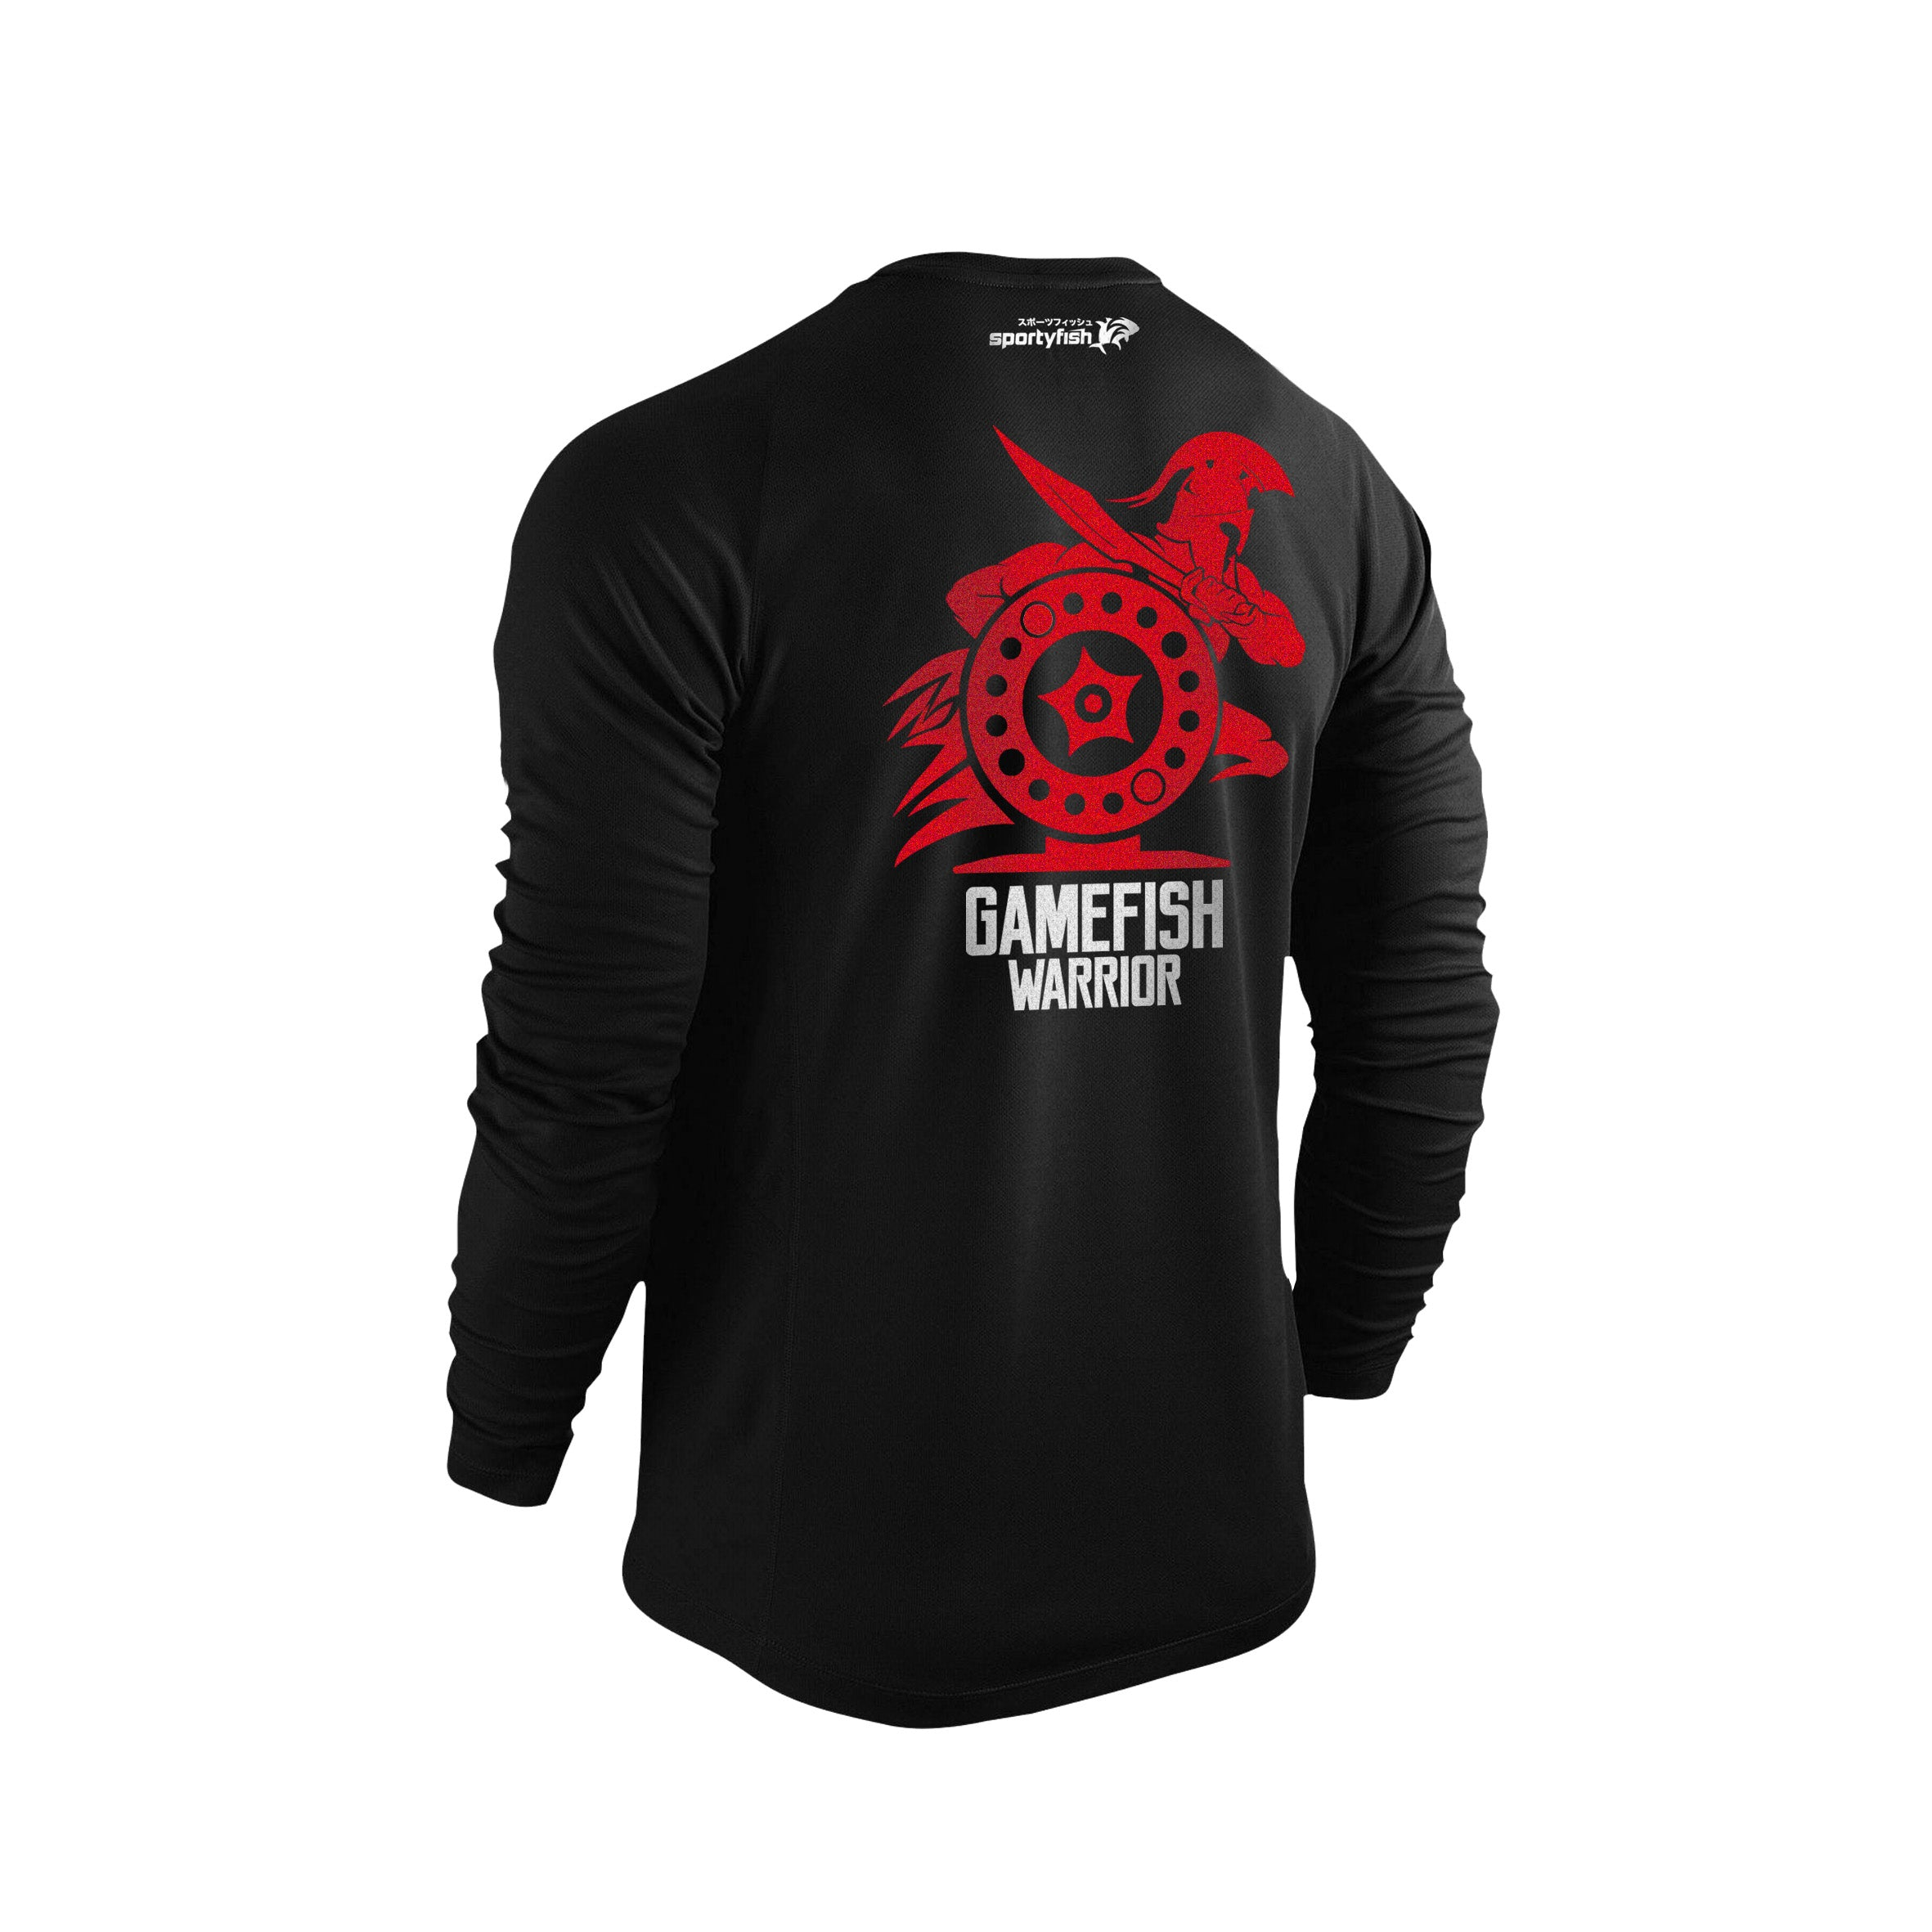 GameFish Warrior Series Long-sleeves T-shirt(back view): The Reel